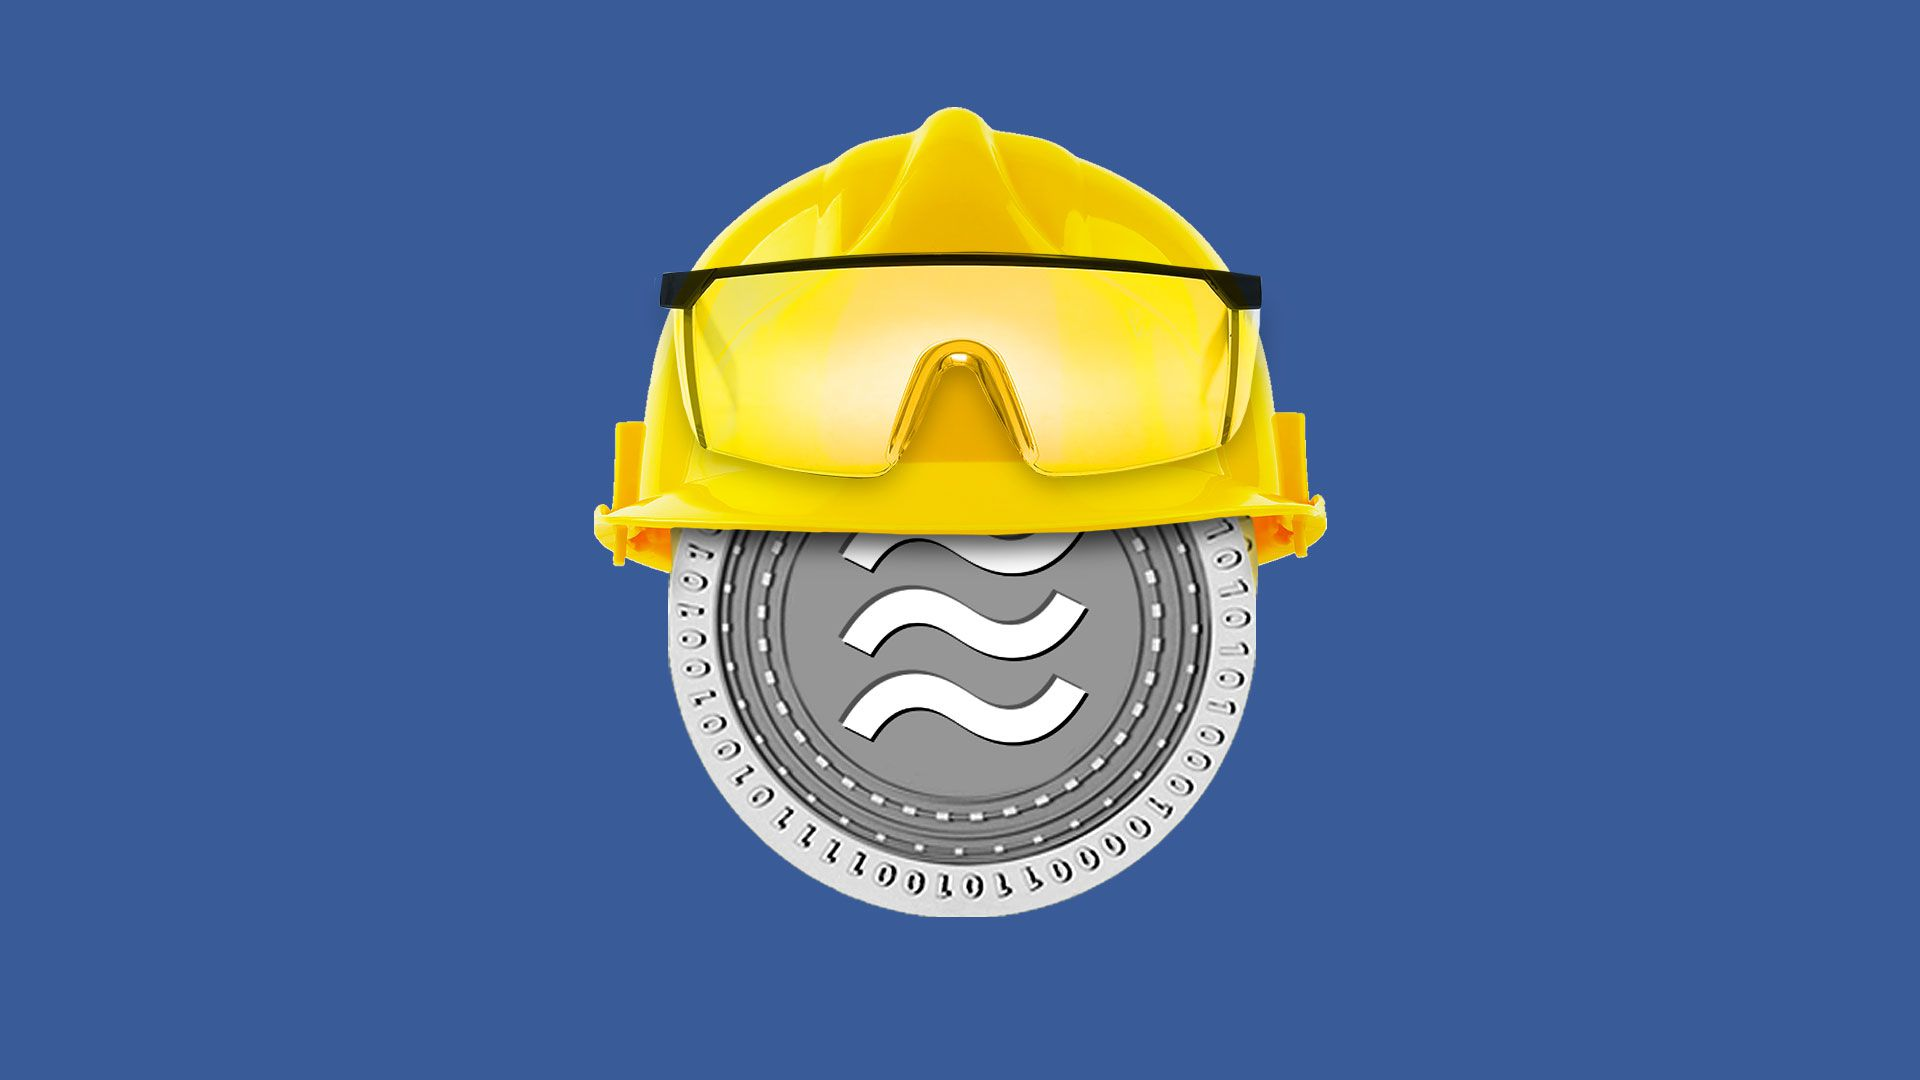 Illustration of a Libra coin wearing a hard hat and safety glasses.